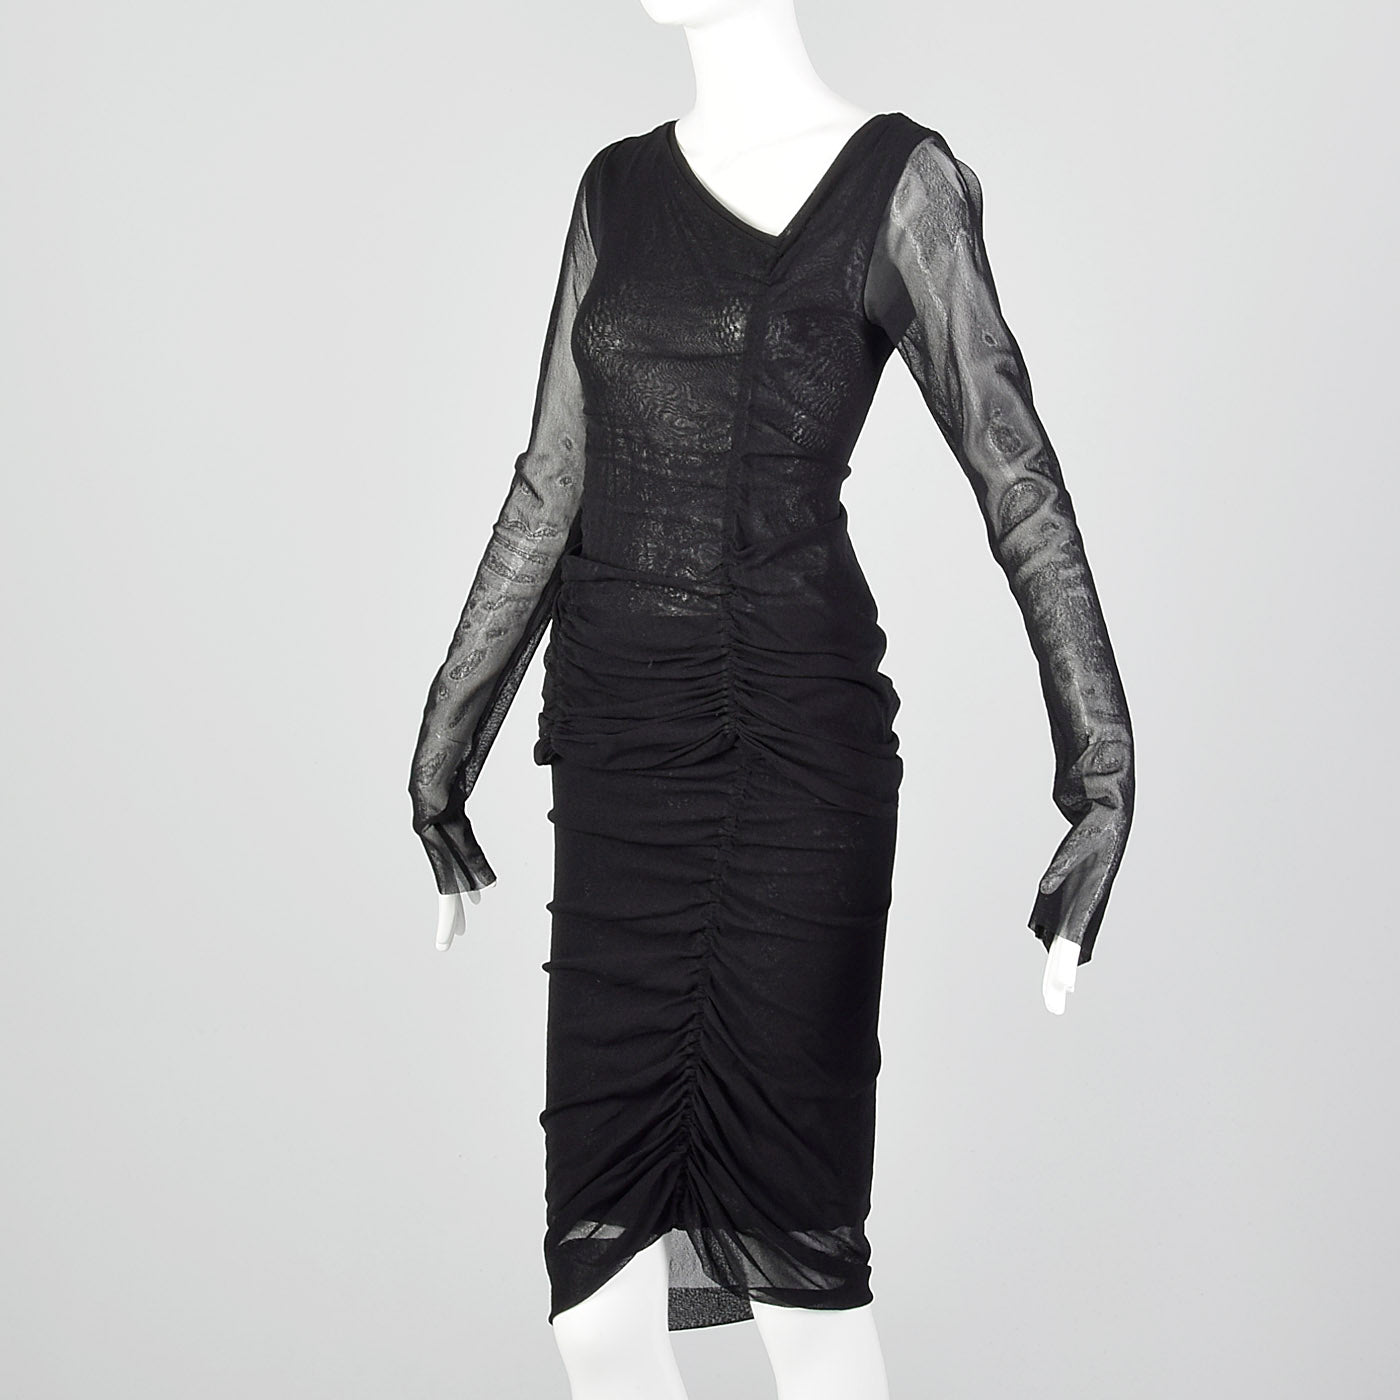 2000s Jean Paul Gaultier Black Mesh Skirt and Top